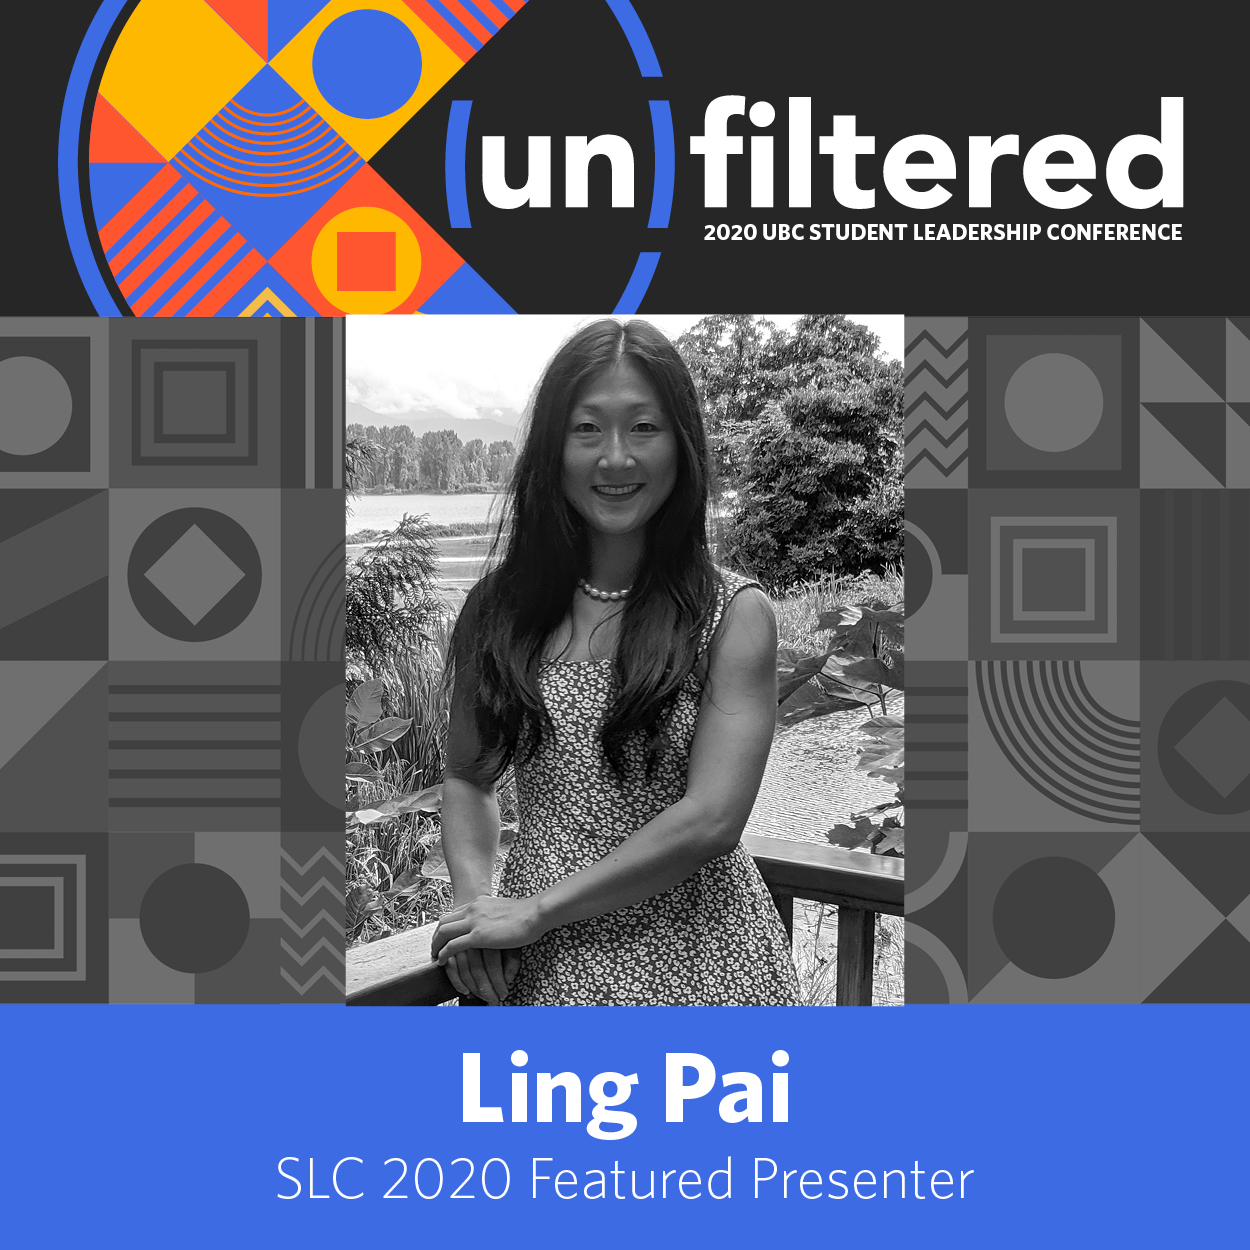 SLC 2020 Featured Presenter Ling Pai